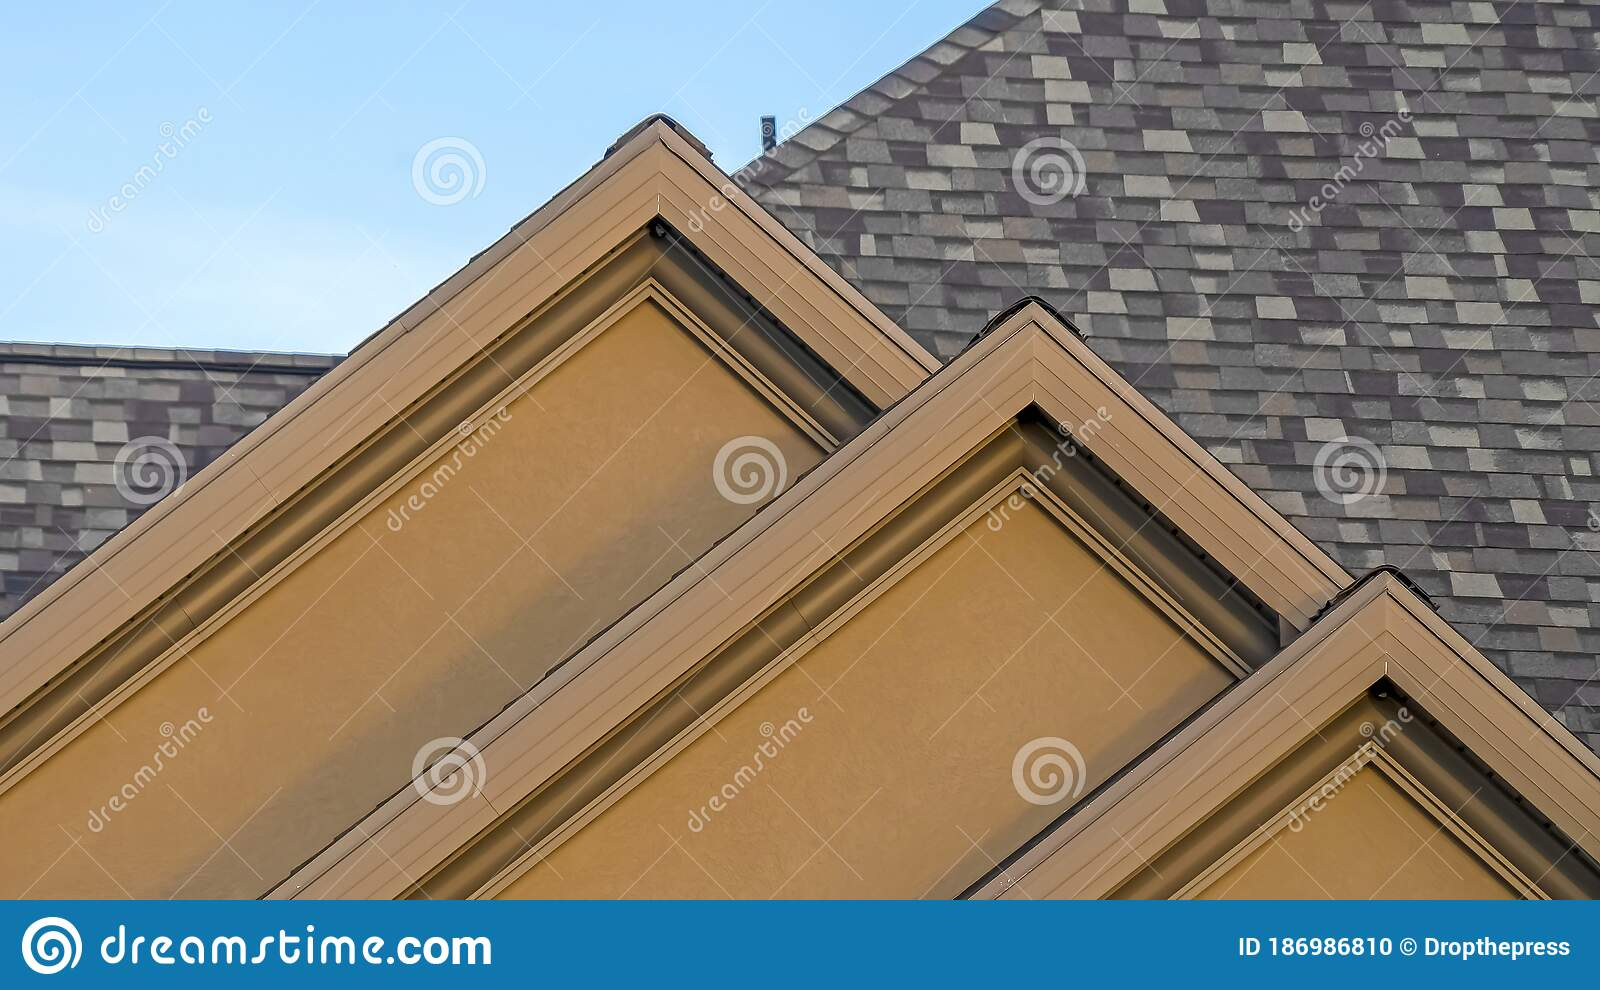 Panorama House Exterior With Front Gable Roof Design Against Blue Sky Background Stock Photo Image Of Estate Gable 186986810